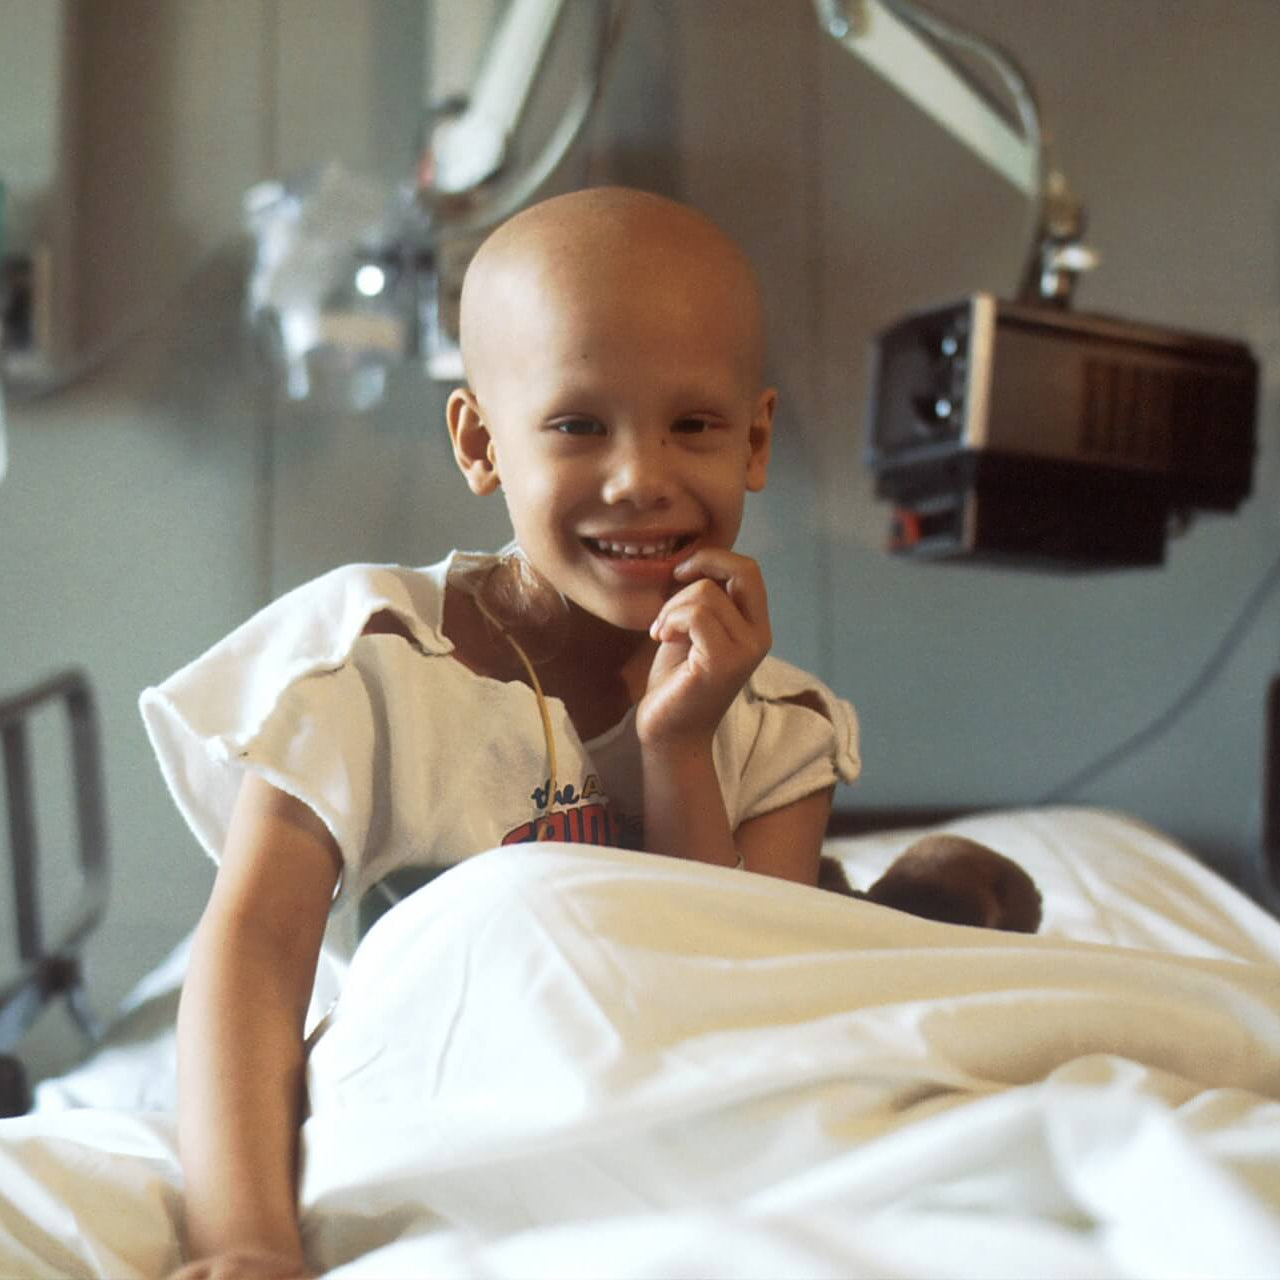 Child with cancer during treatment on bed in hospital. - JWLRY fight against cancer